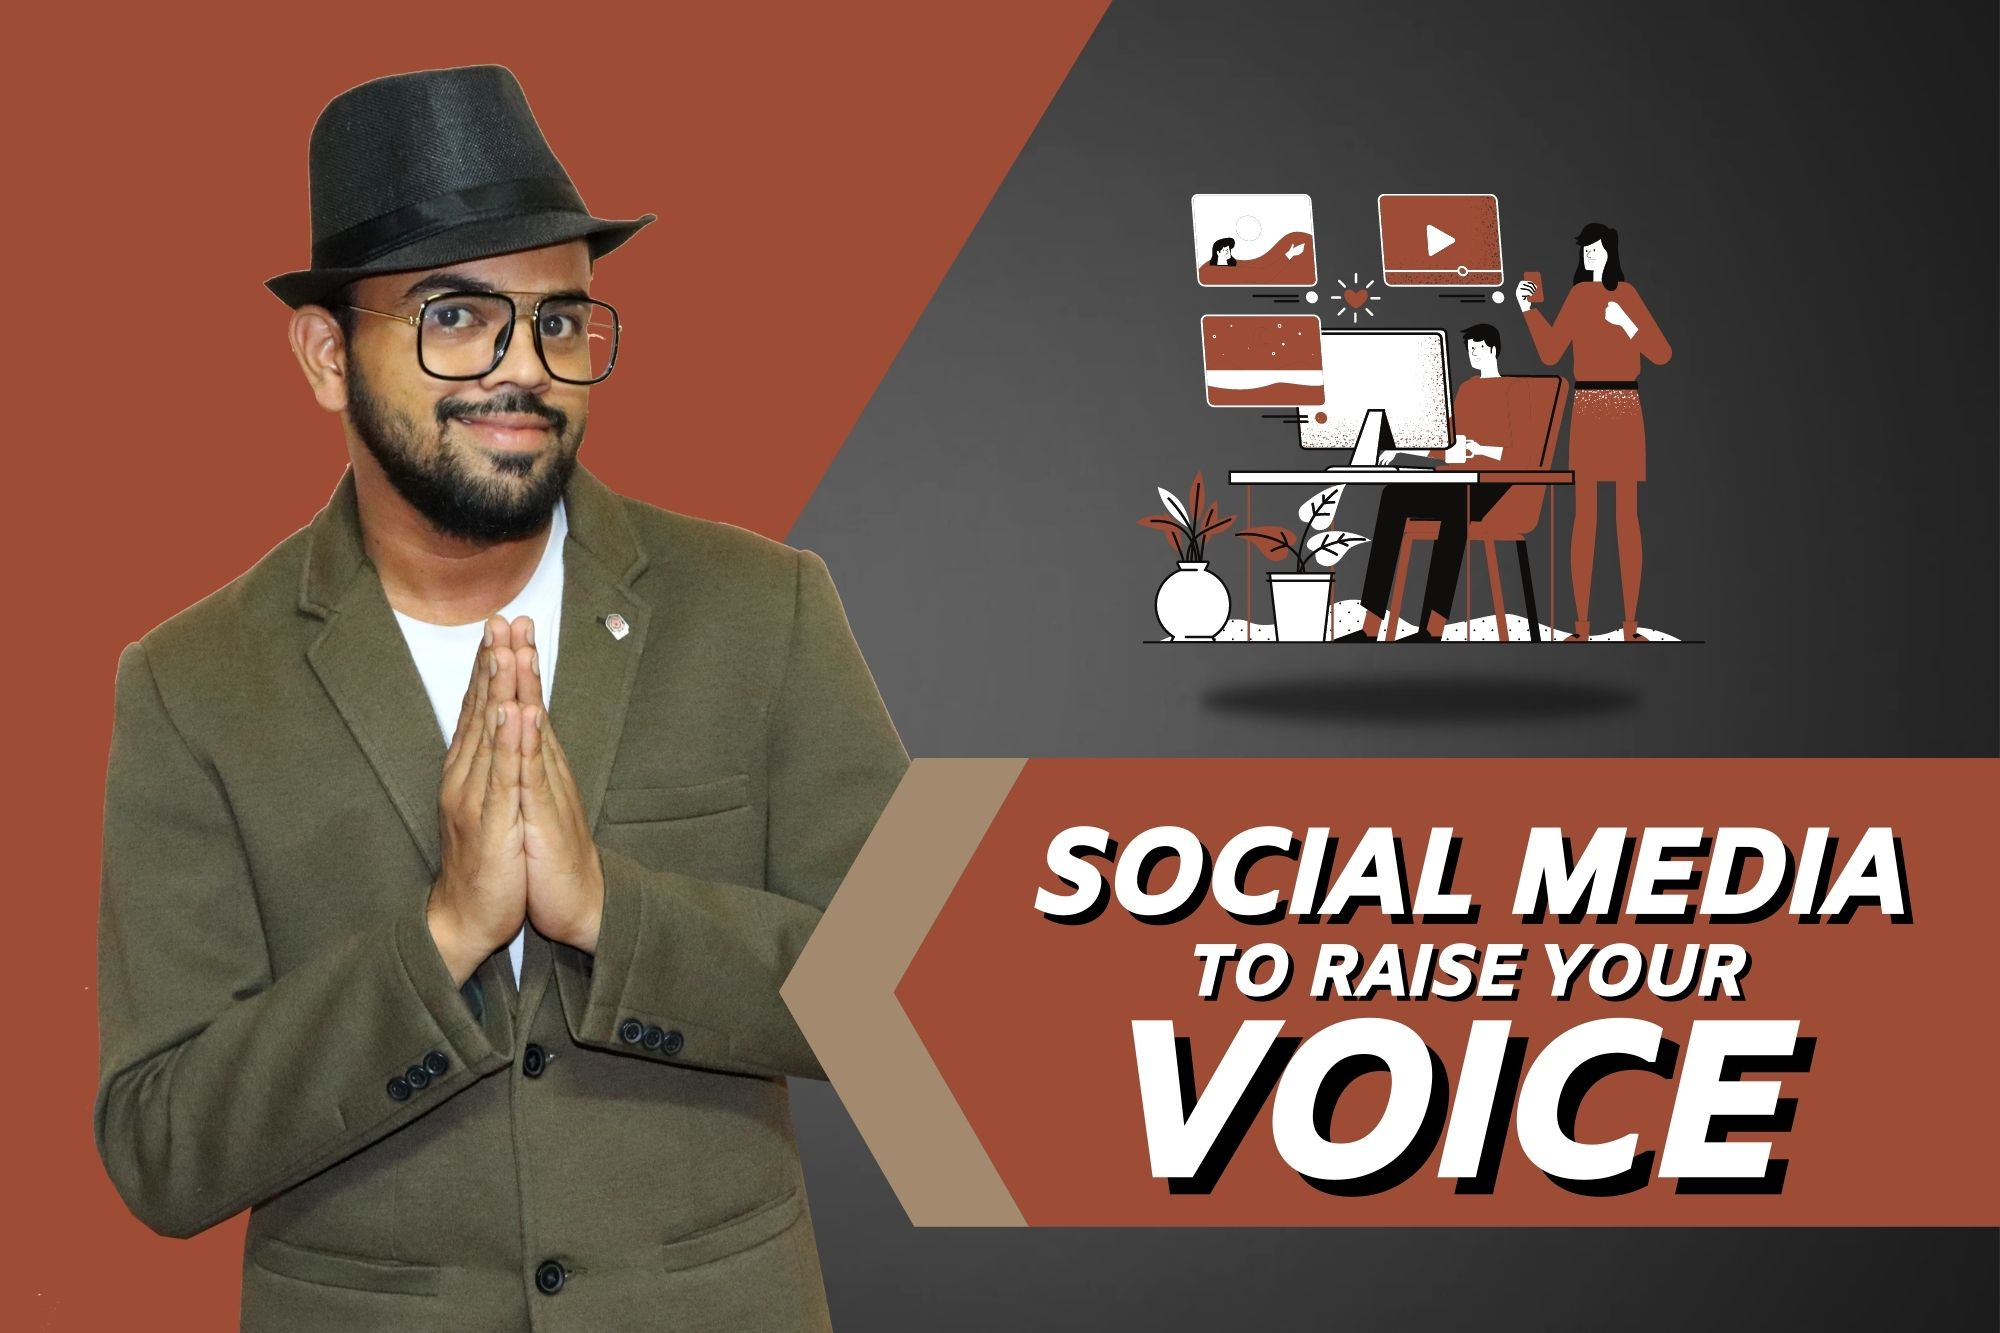 How to use social media to raise your voice